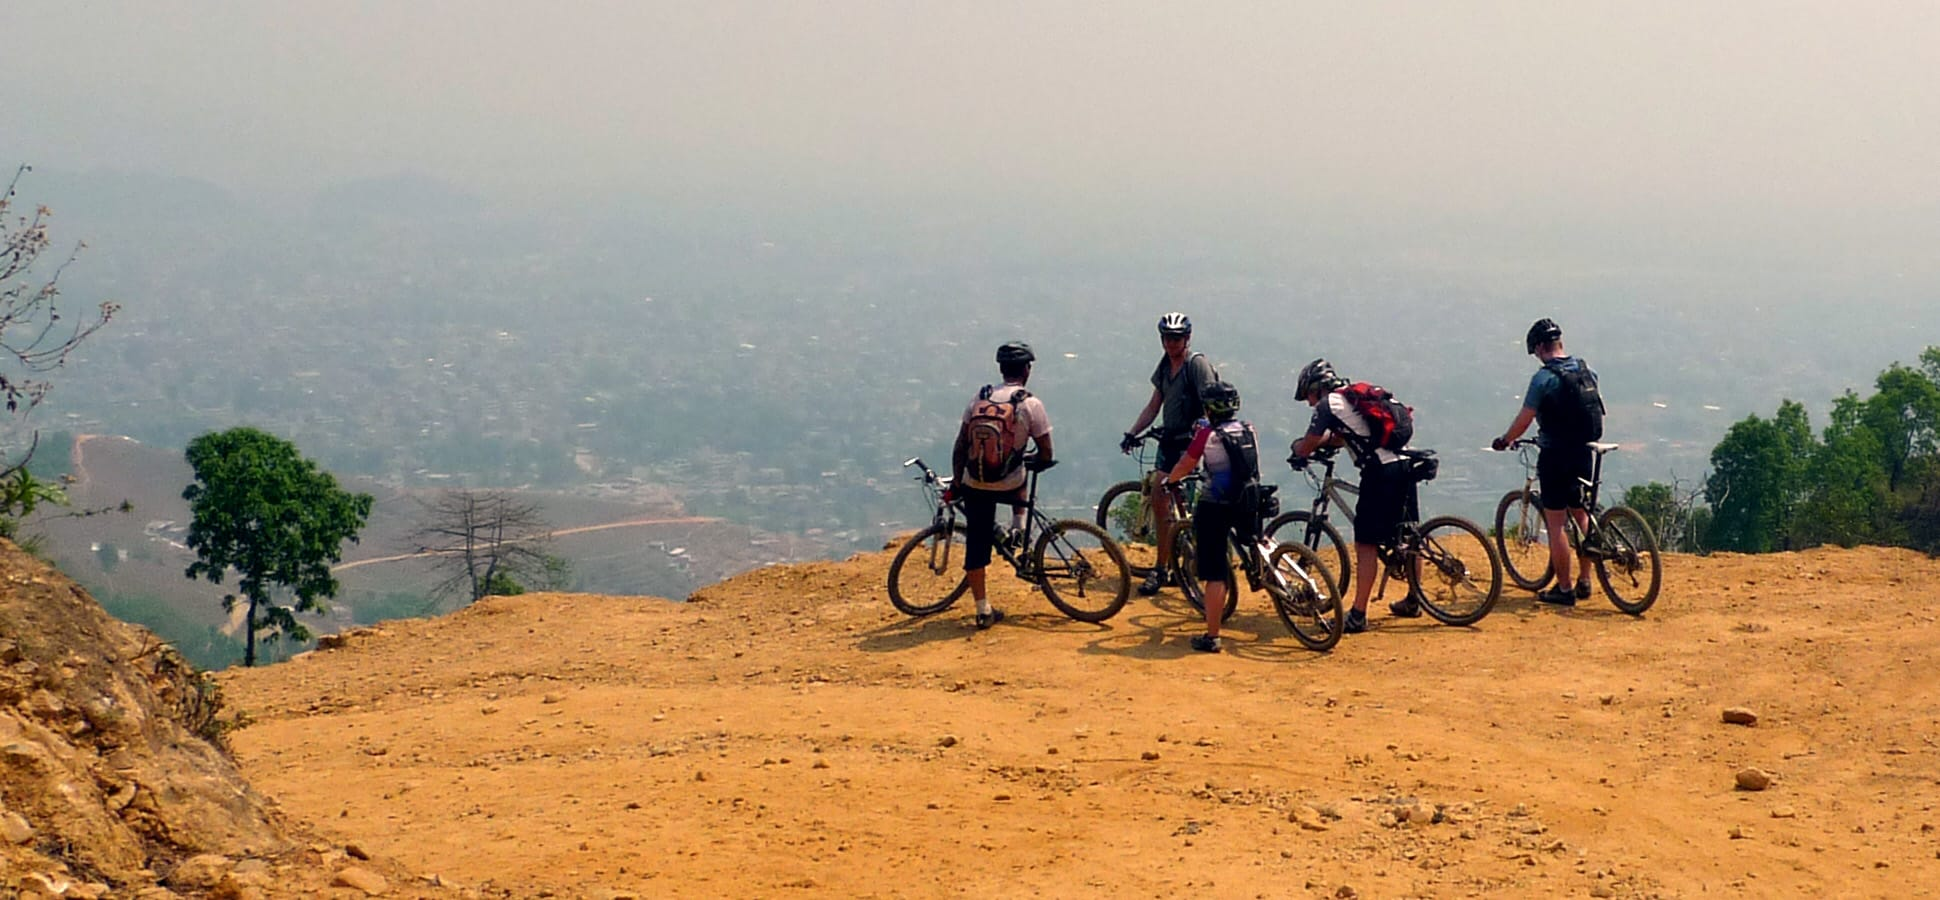 Mountain biking in Nepal | Shredding through high hills and himalayas.